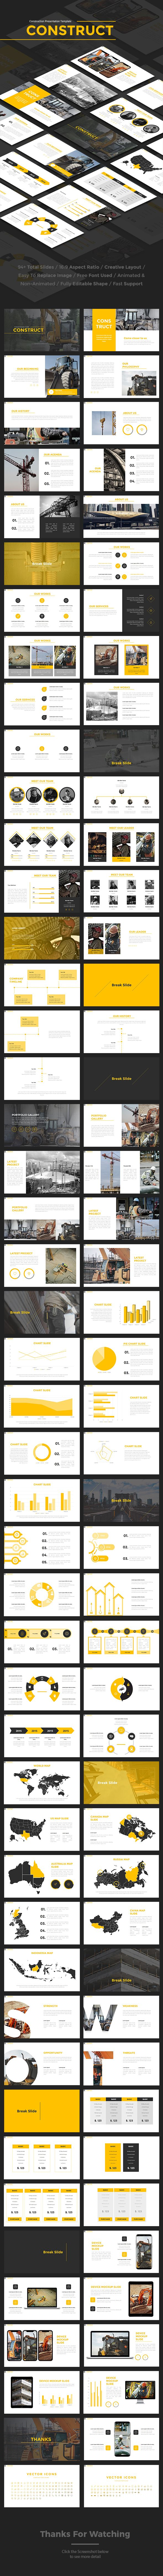 Construct construction googleslides template template keynote construct construction googleslides template template keynote and business powerpoint templates toneelgroepblik Images